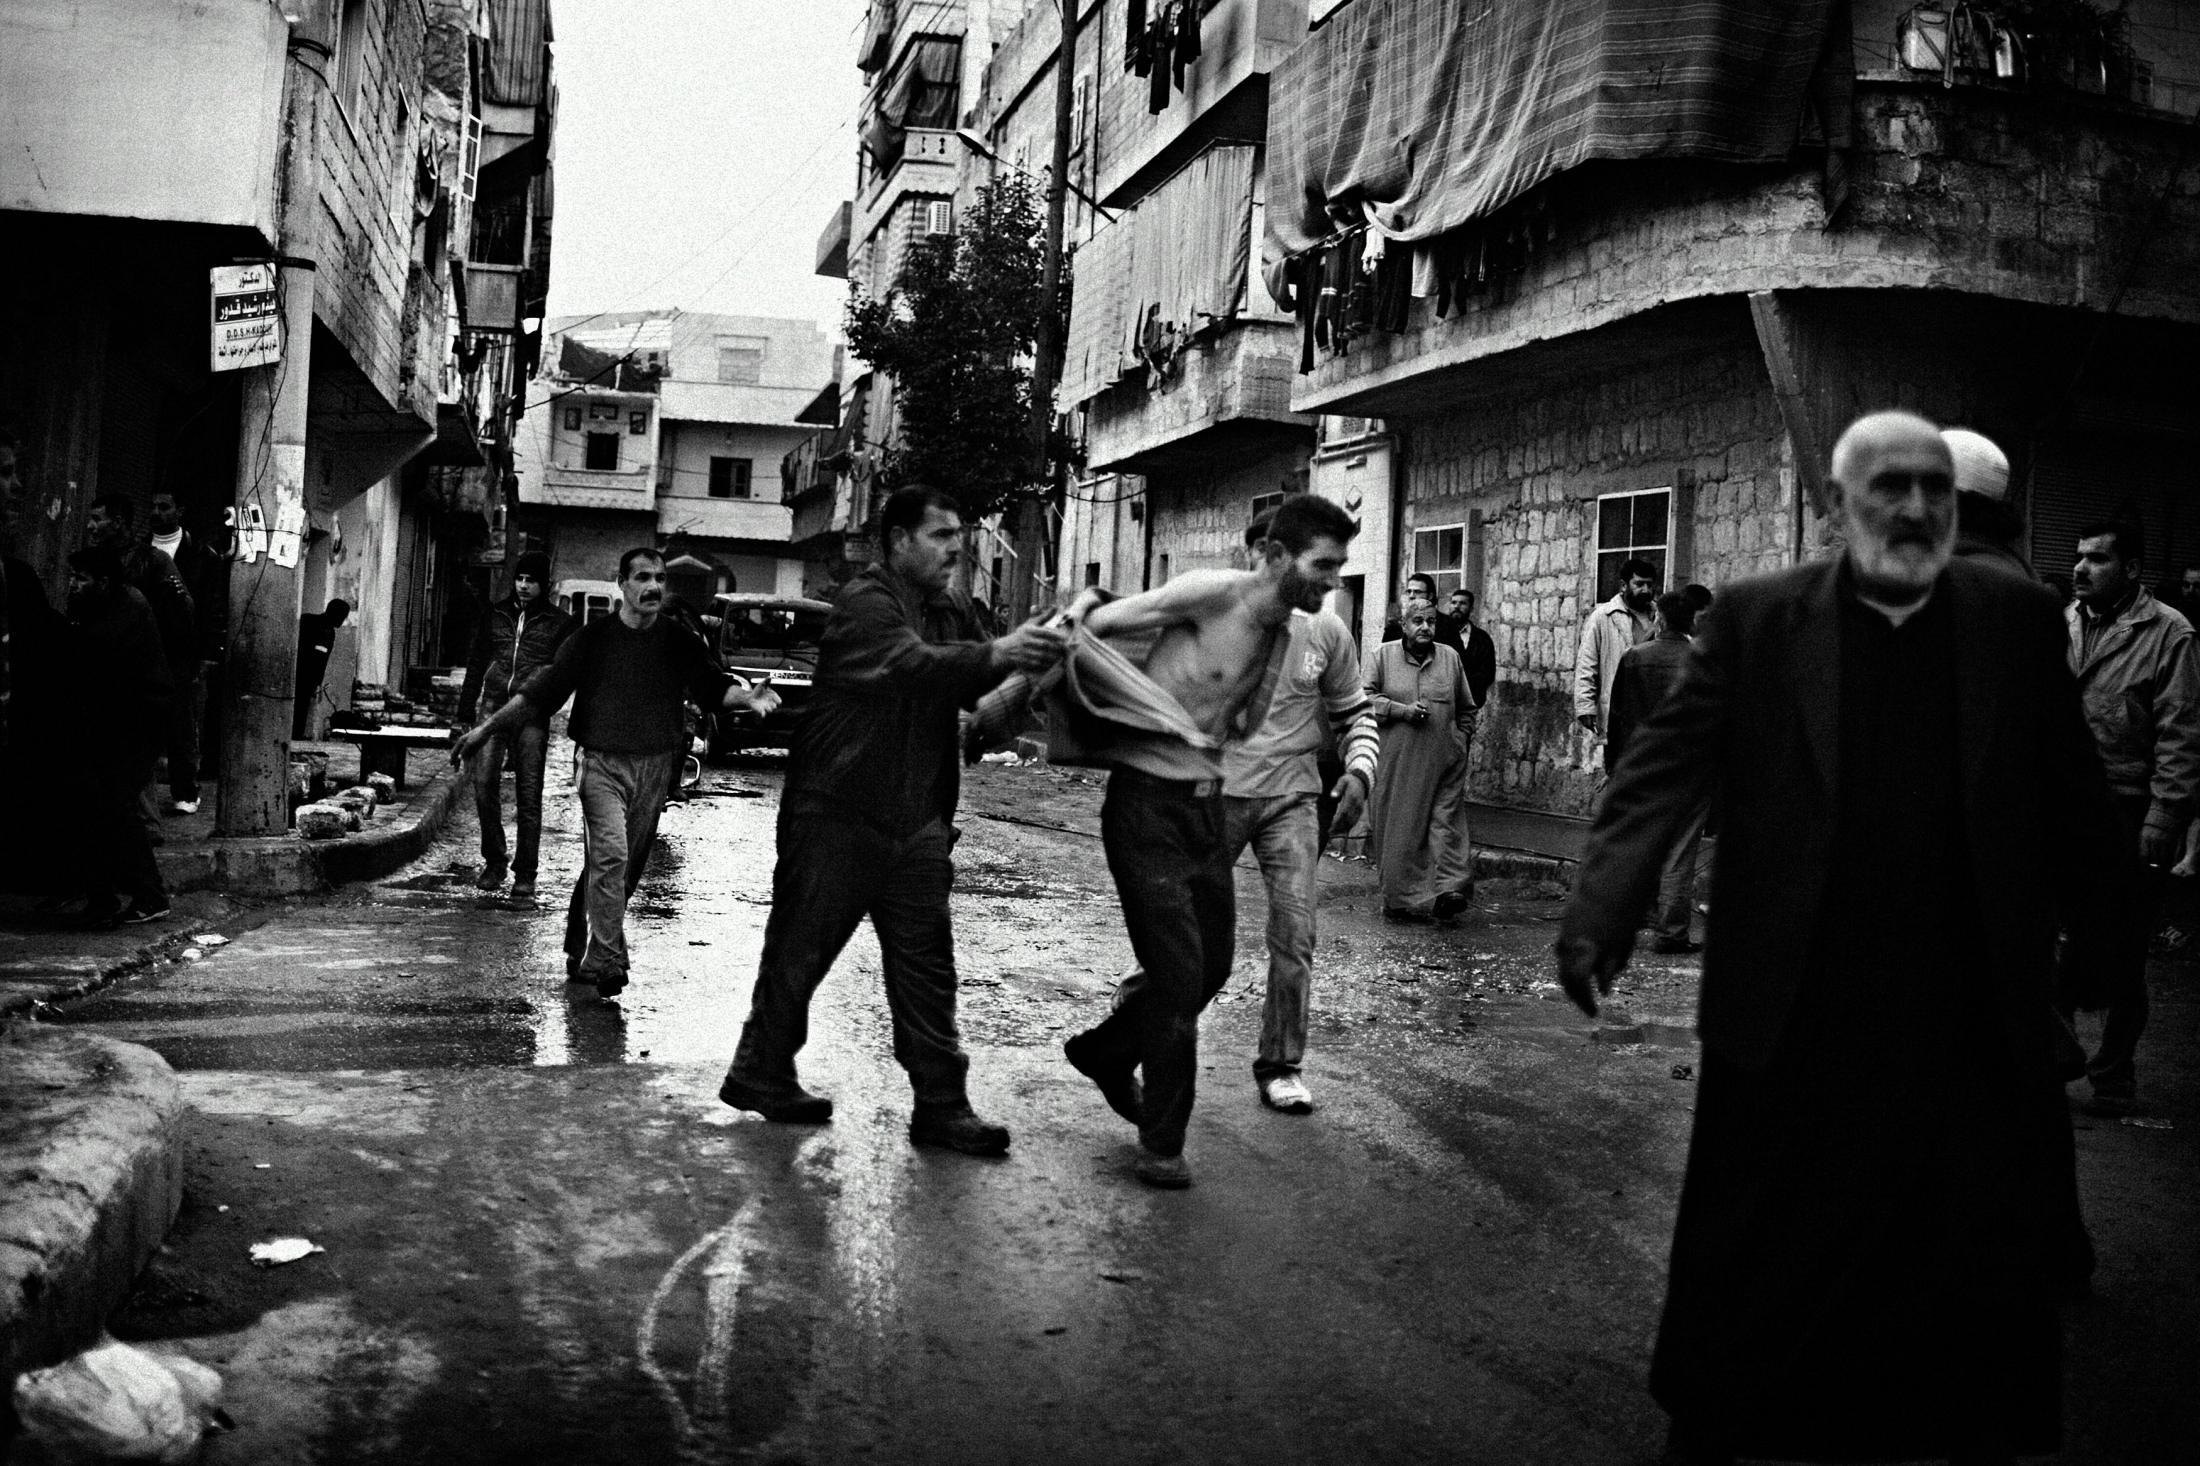 """A man shouting in the street after his house was targeted by a misile launched from a helicopter and lose his wife and 3 childrens in the Al-Amriyah neighborhood of Aleppo, Syria, Wednesday, Jan. 3, 2013. The United Nations estimated that more than 400,000 people have been killed in Syria's 60-month-old uprising against authoritarian rule, a toll one-third higher than what anti-regime activists had counted. The U.N. human rights chief called the toll """"truly shocking."""" Copyright: Spanish Photojournalist Andoni Lubaki"""